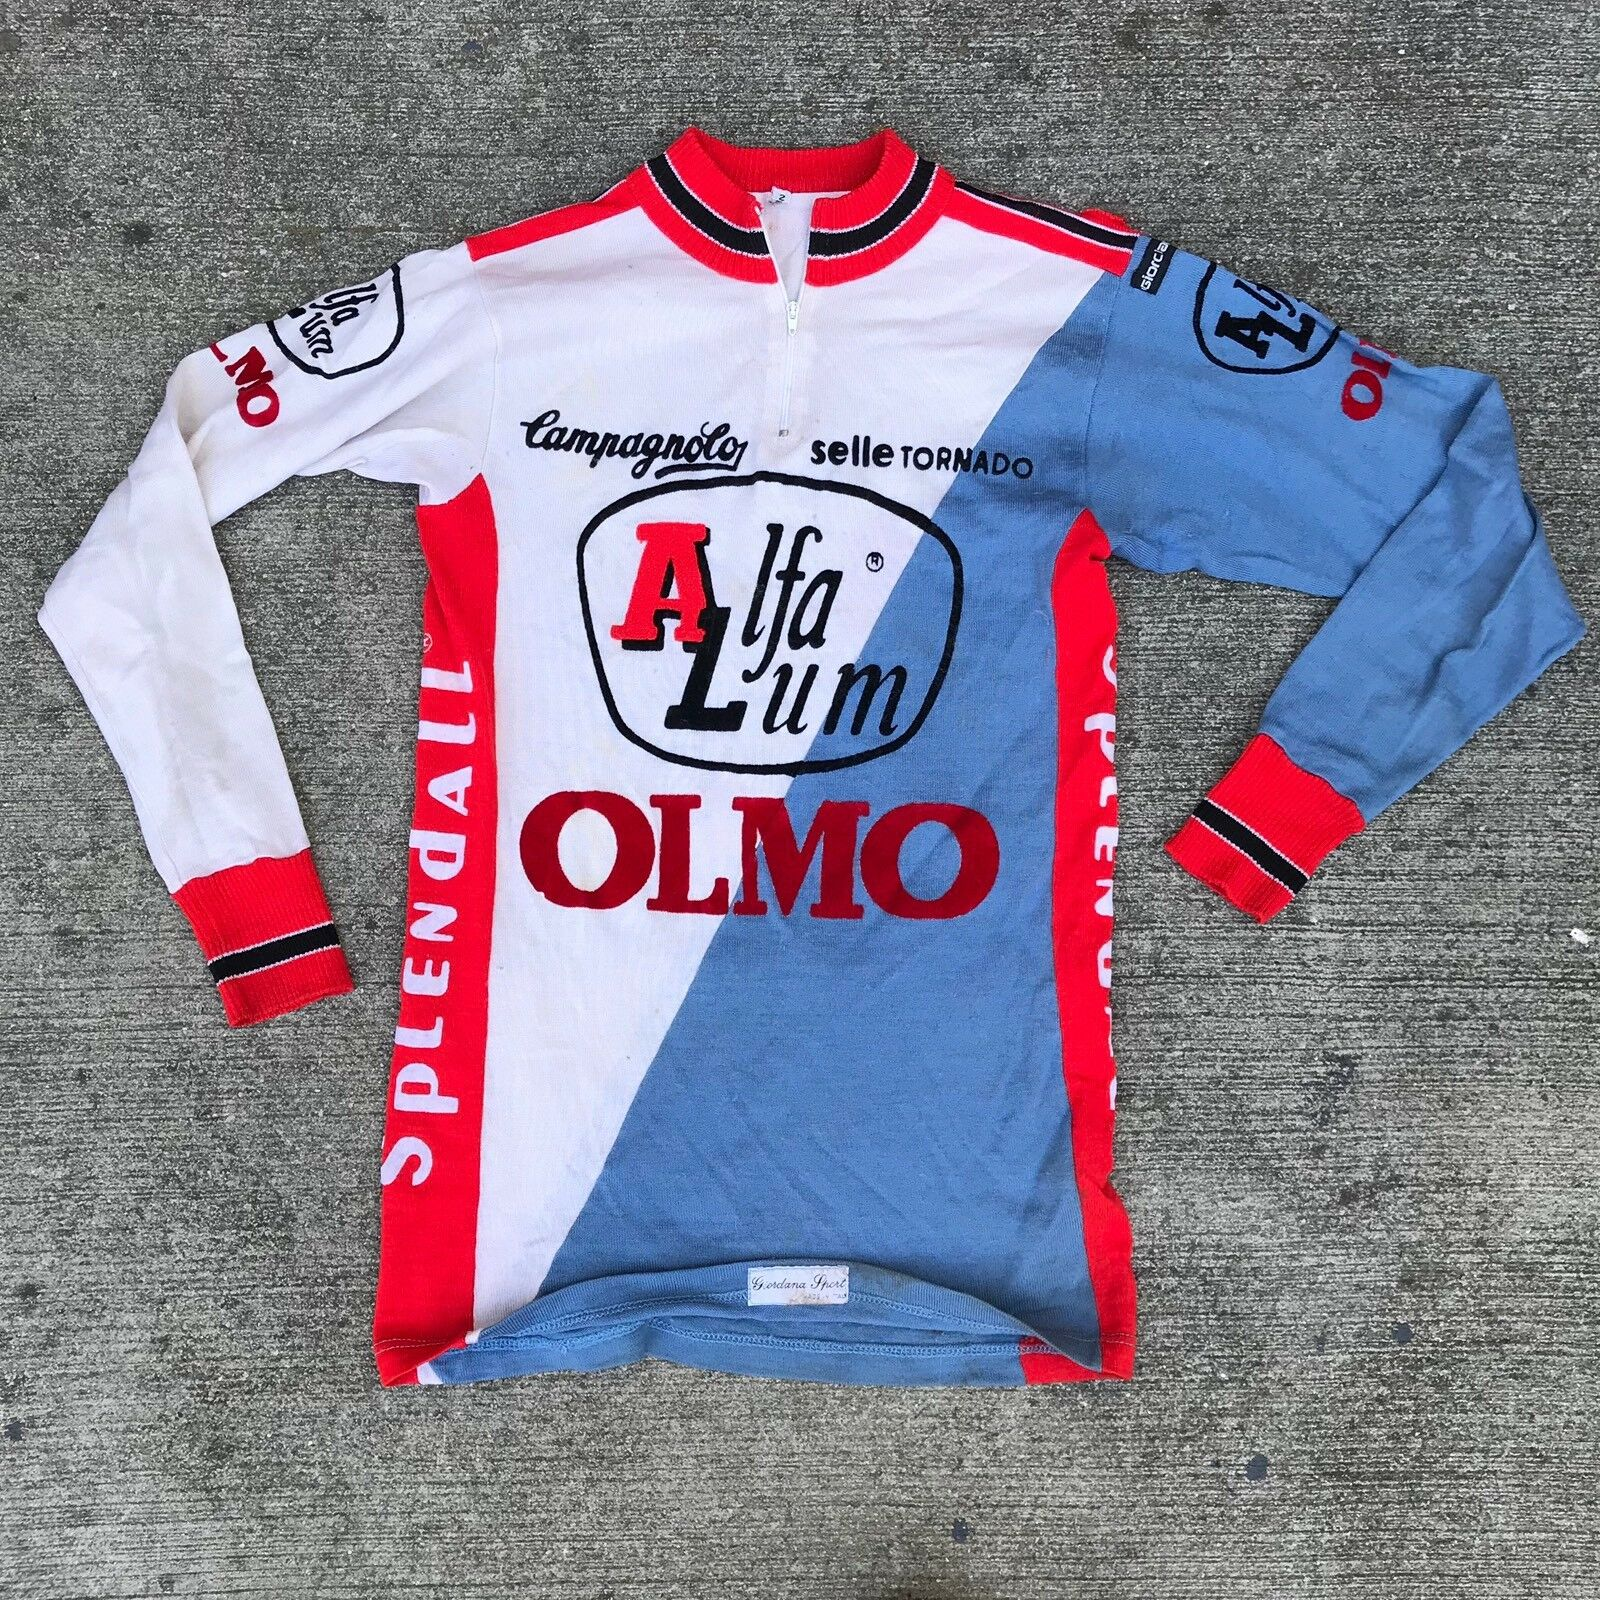 CAMPAGNOLO Alfa Lum Olmo Spendall Selle Tornado Jersey  Cycling Shirt  100% brand new with original quality